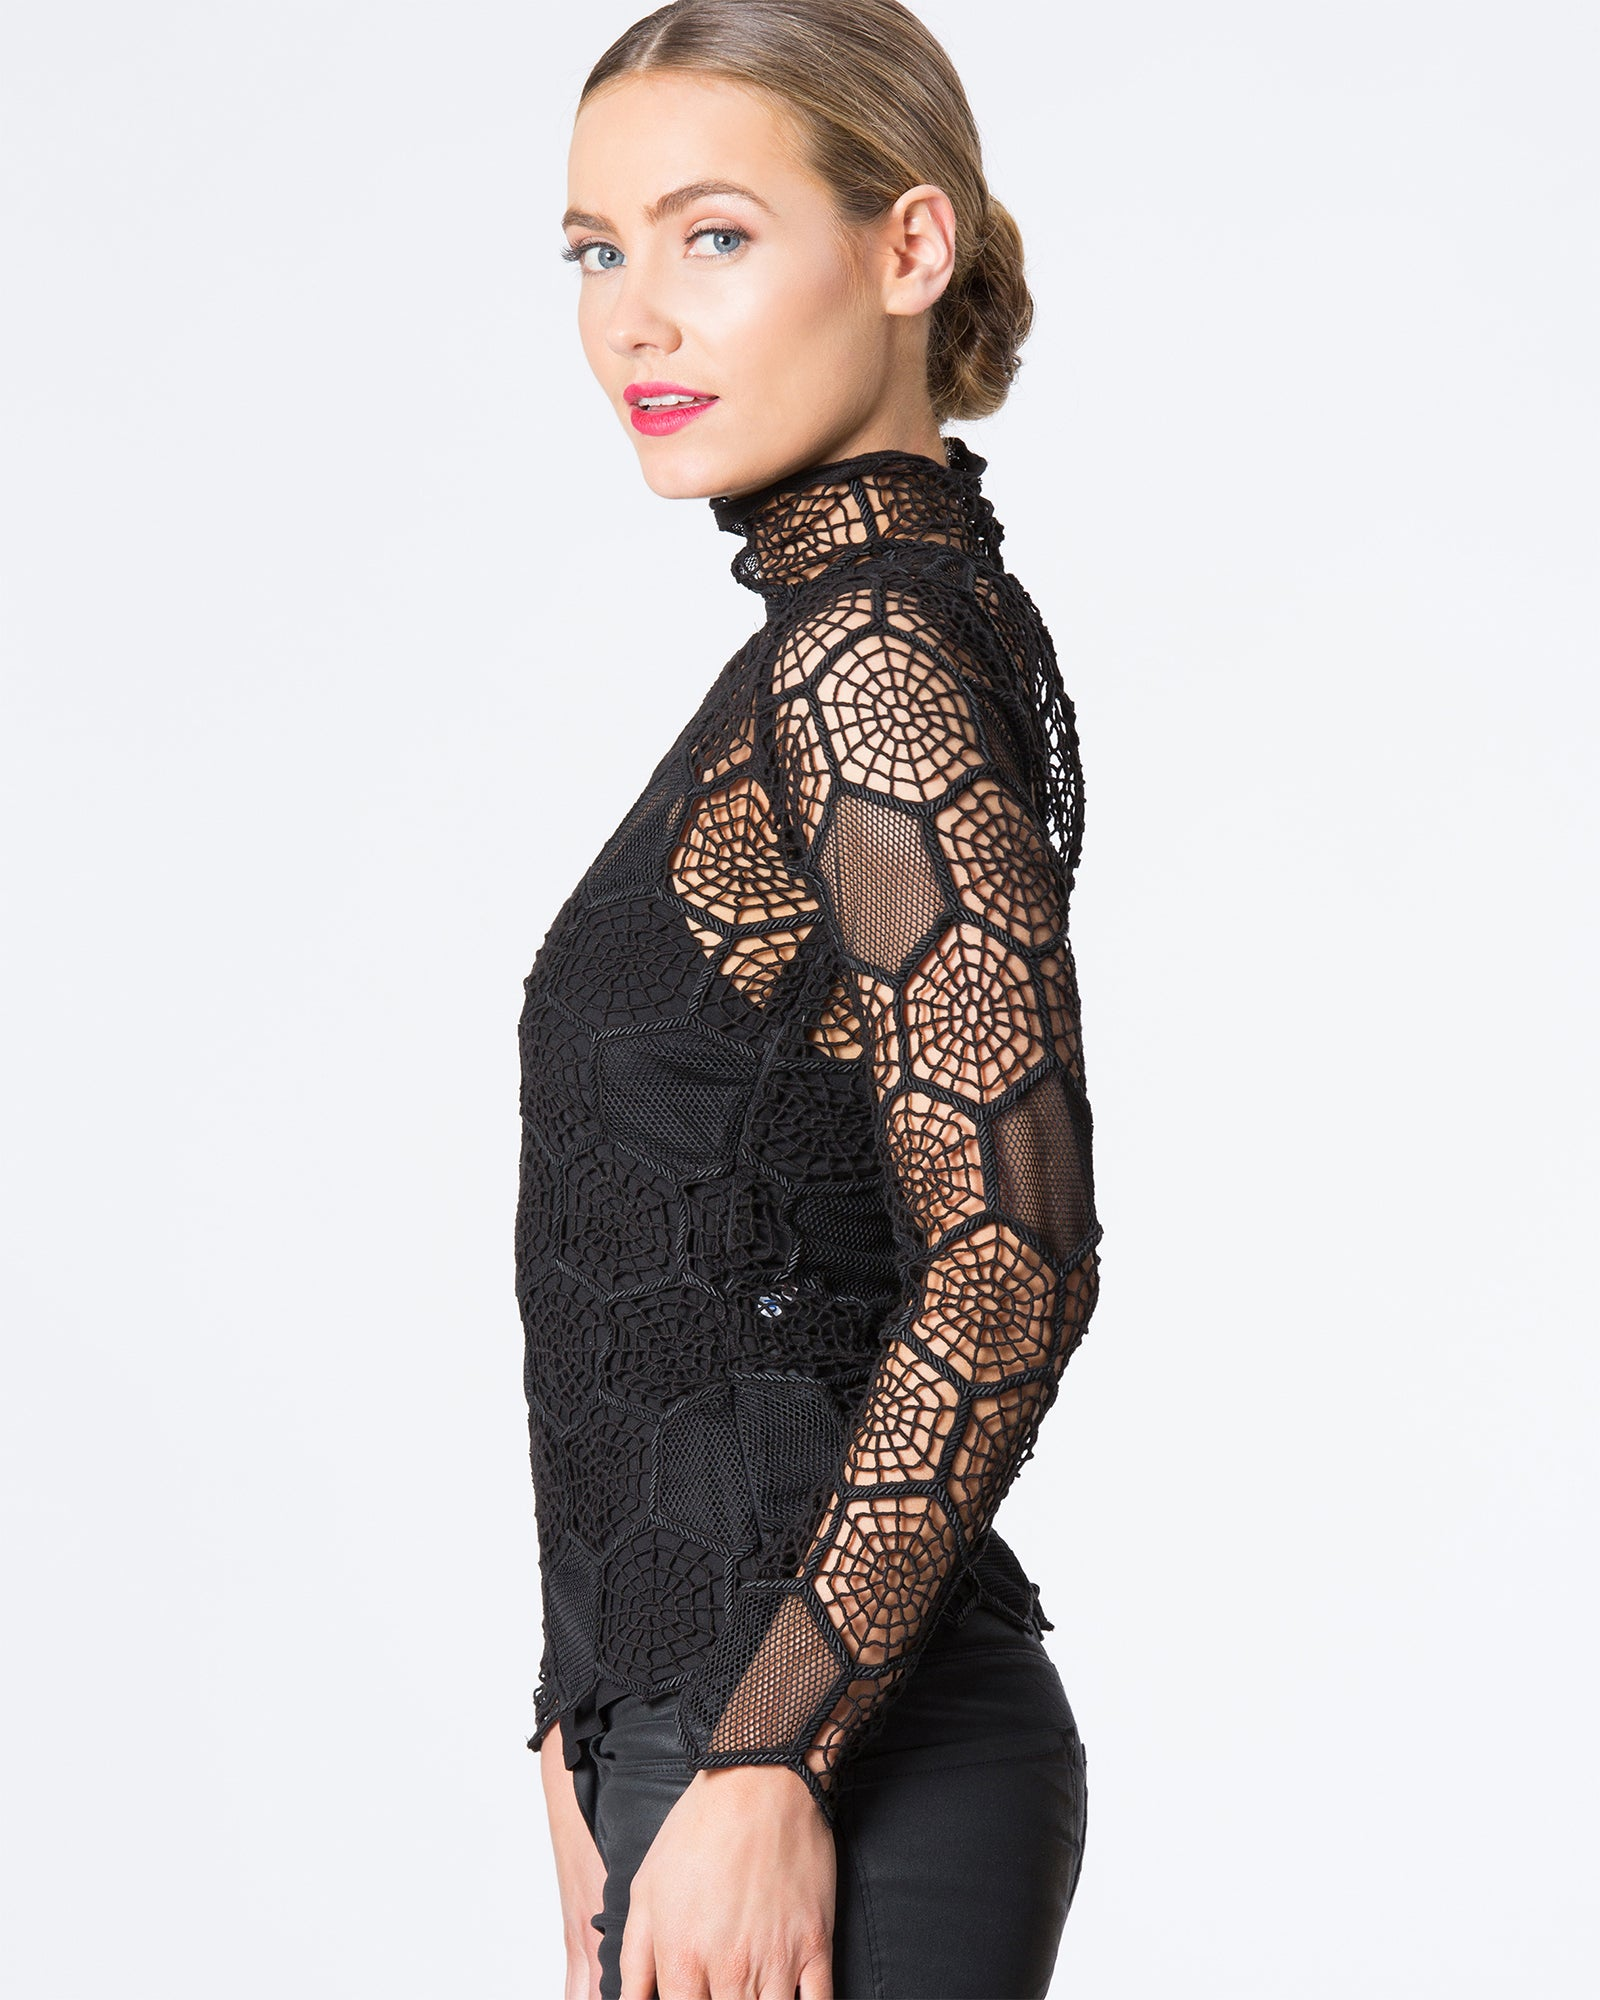 HONEYCOMB LONG SLEEVED TOP